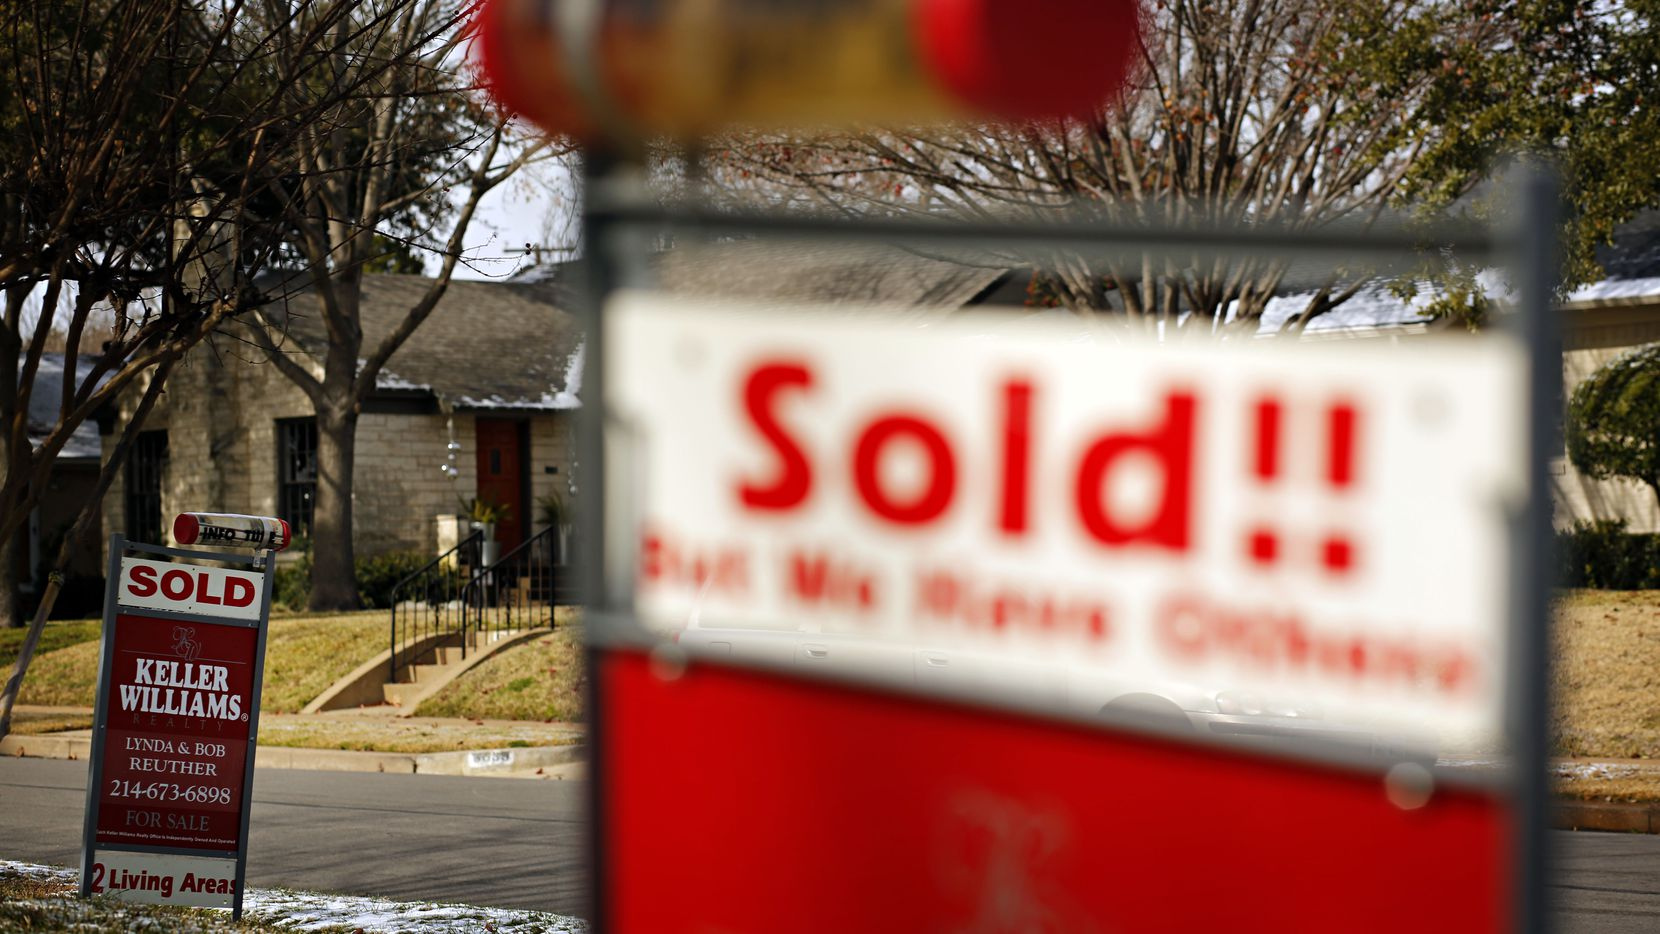 With mortgage rates near historic lows, more people are buying homes or refinancing.